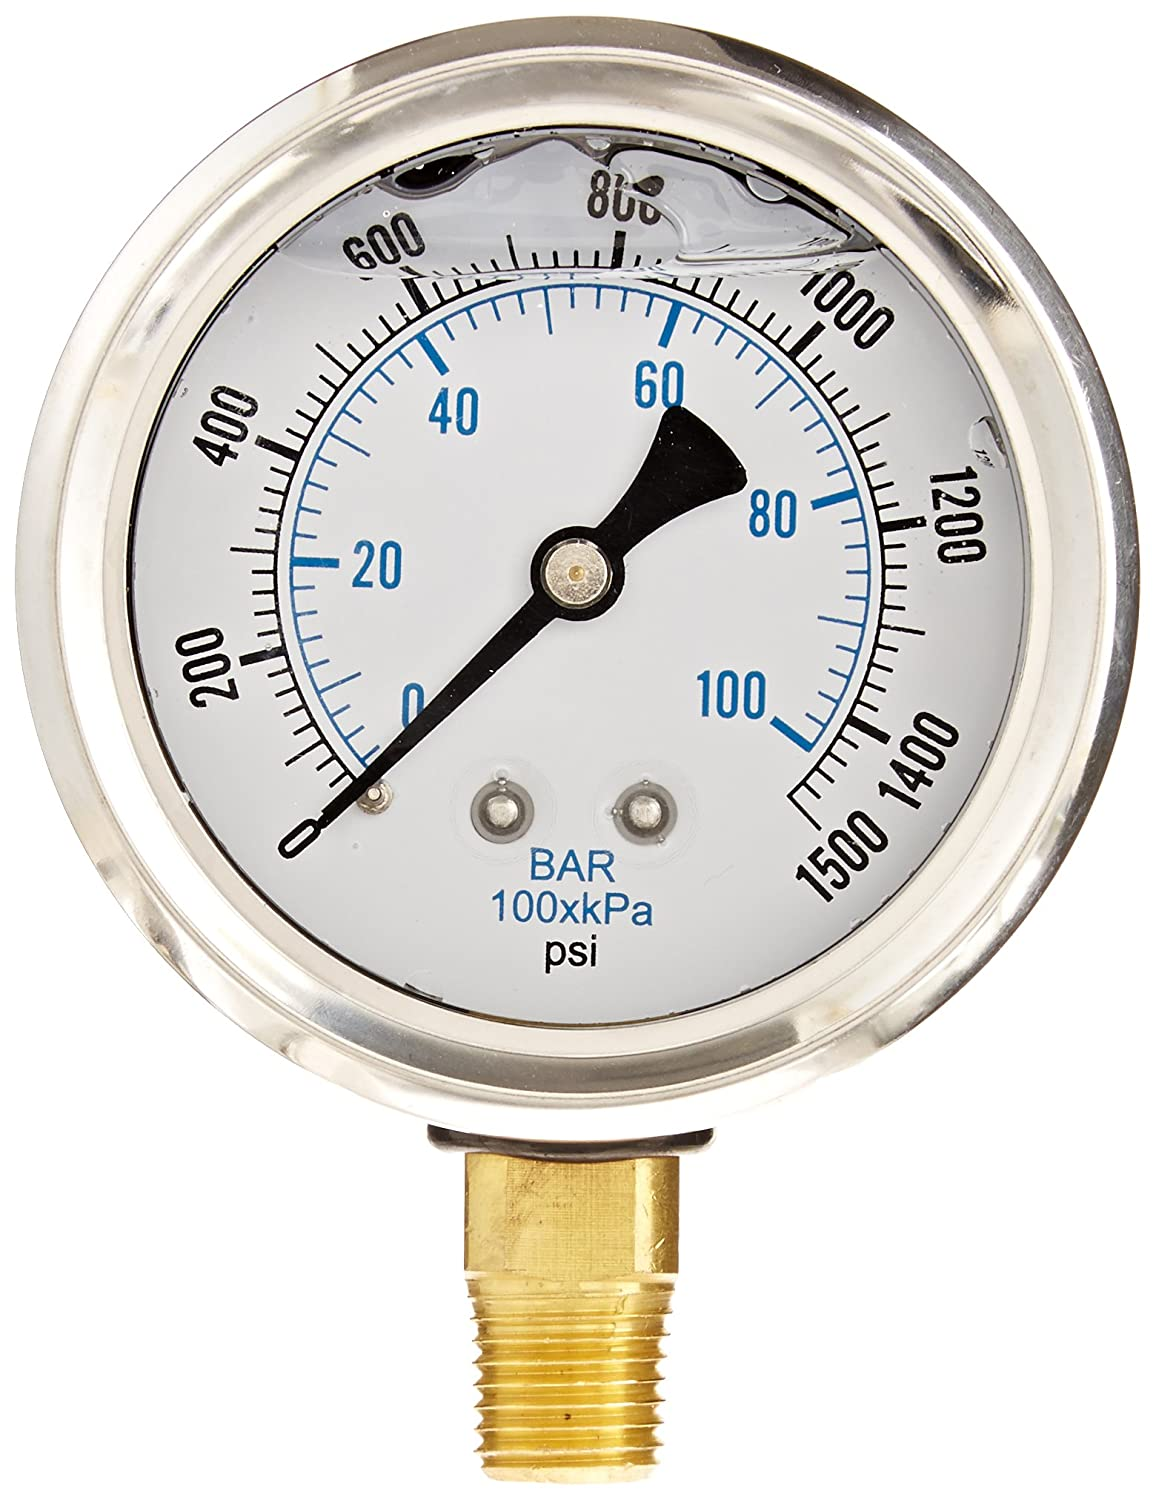 PIC Gauge PRO 201L 254N Glycerin Filled Industrial Bottom Mount Pressure Gauge with Stainless Steel Case Brass Internals Plastic Lens 2 1 2 Dial Size 1 4 Male NPT 0 1500 psi